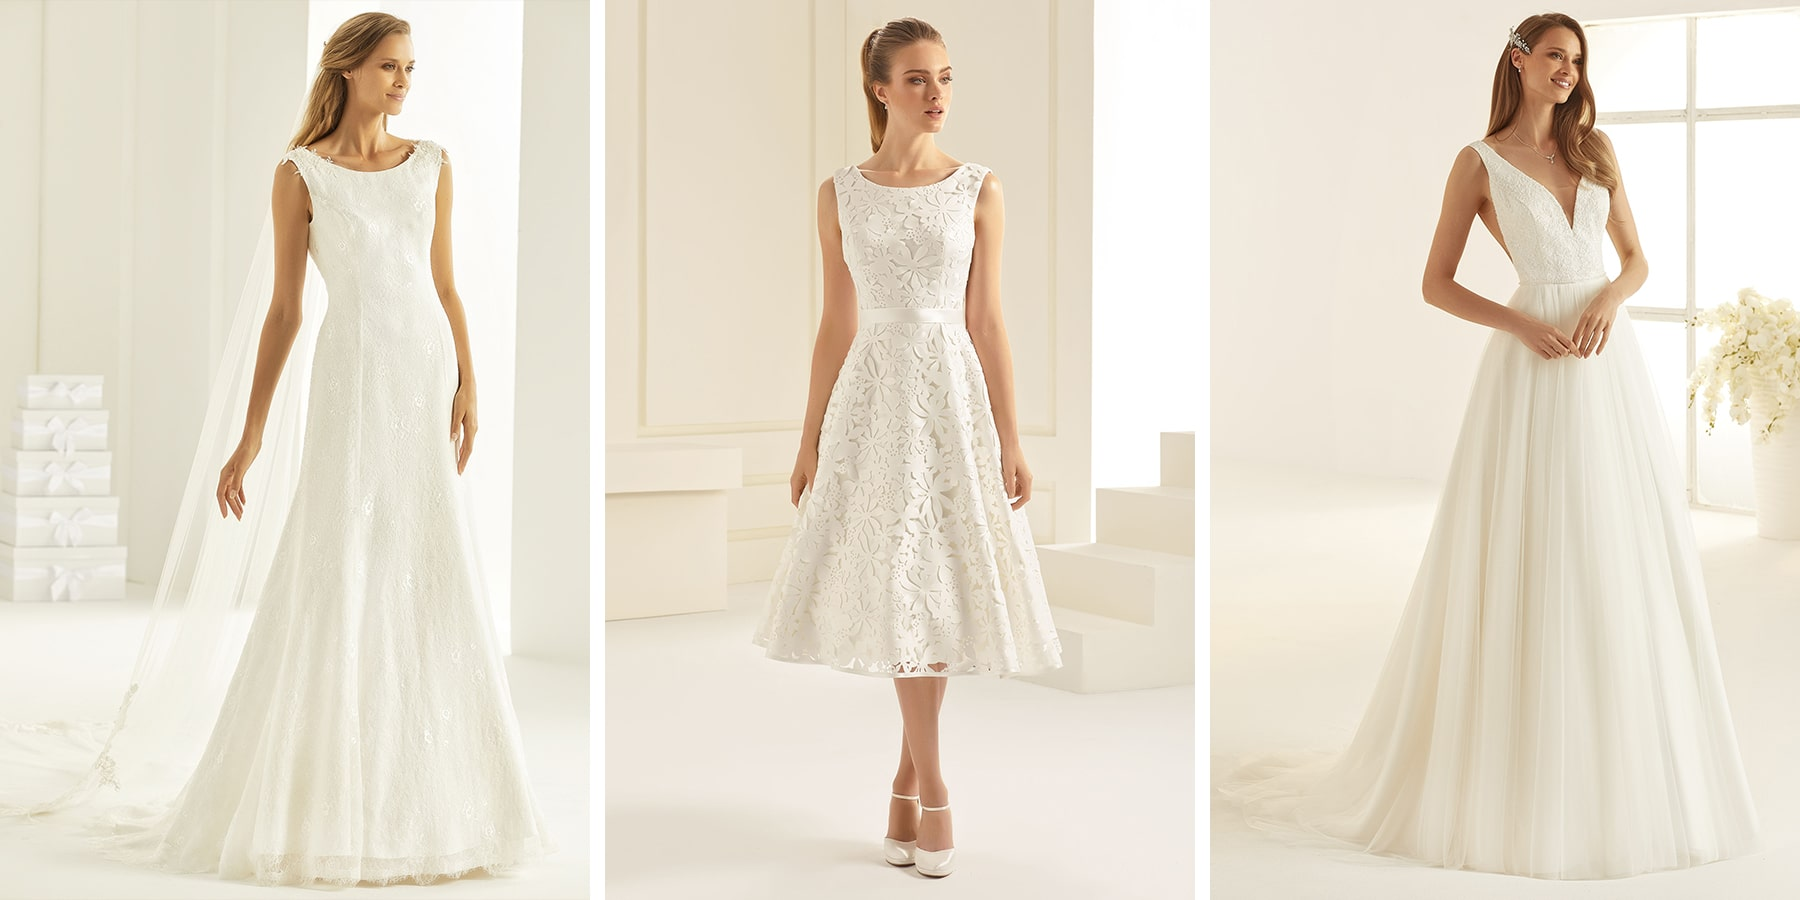 Ultimate Guide To Choosing Flowing Bridal Gowns For Your Beach Wedding